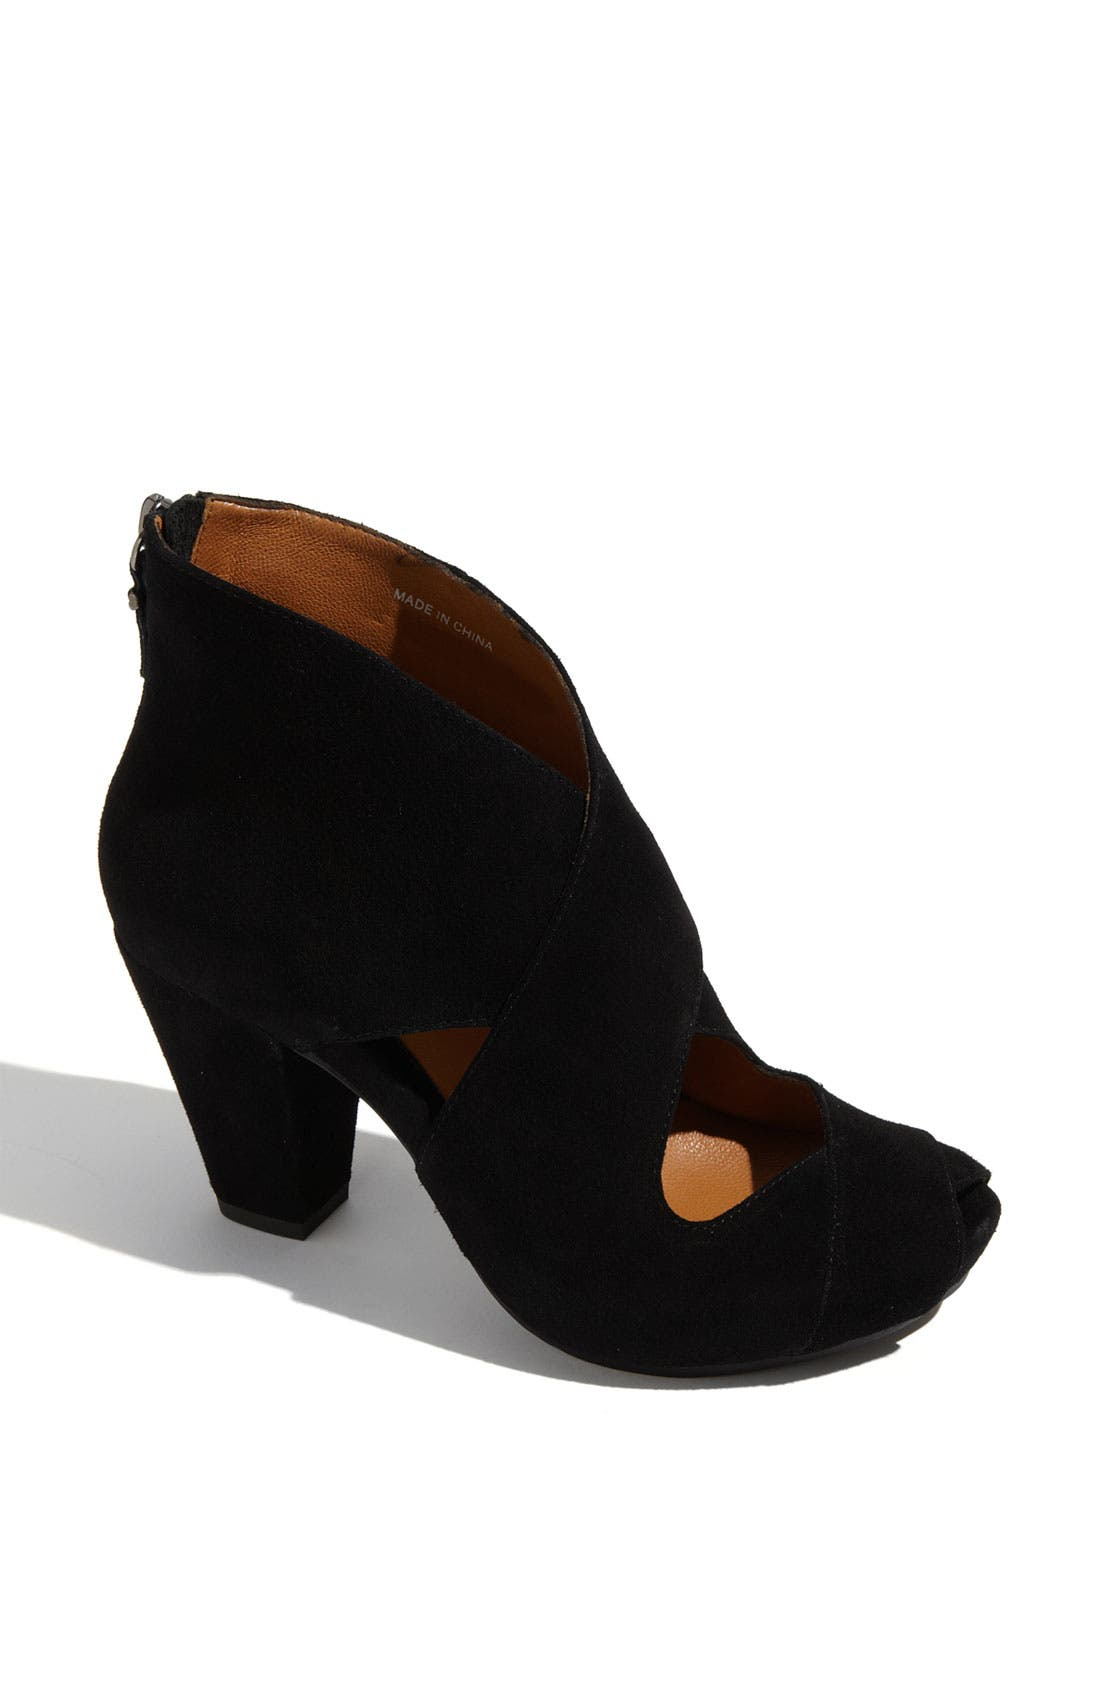 Main Image - Earthies® 'Cristiana' Suede Bootie